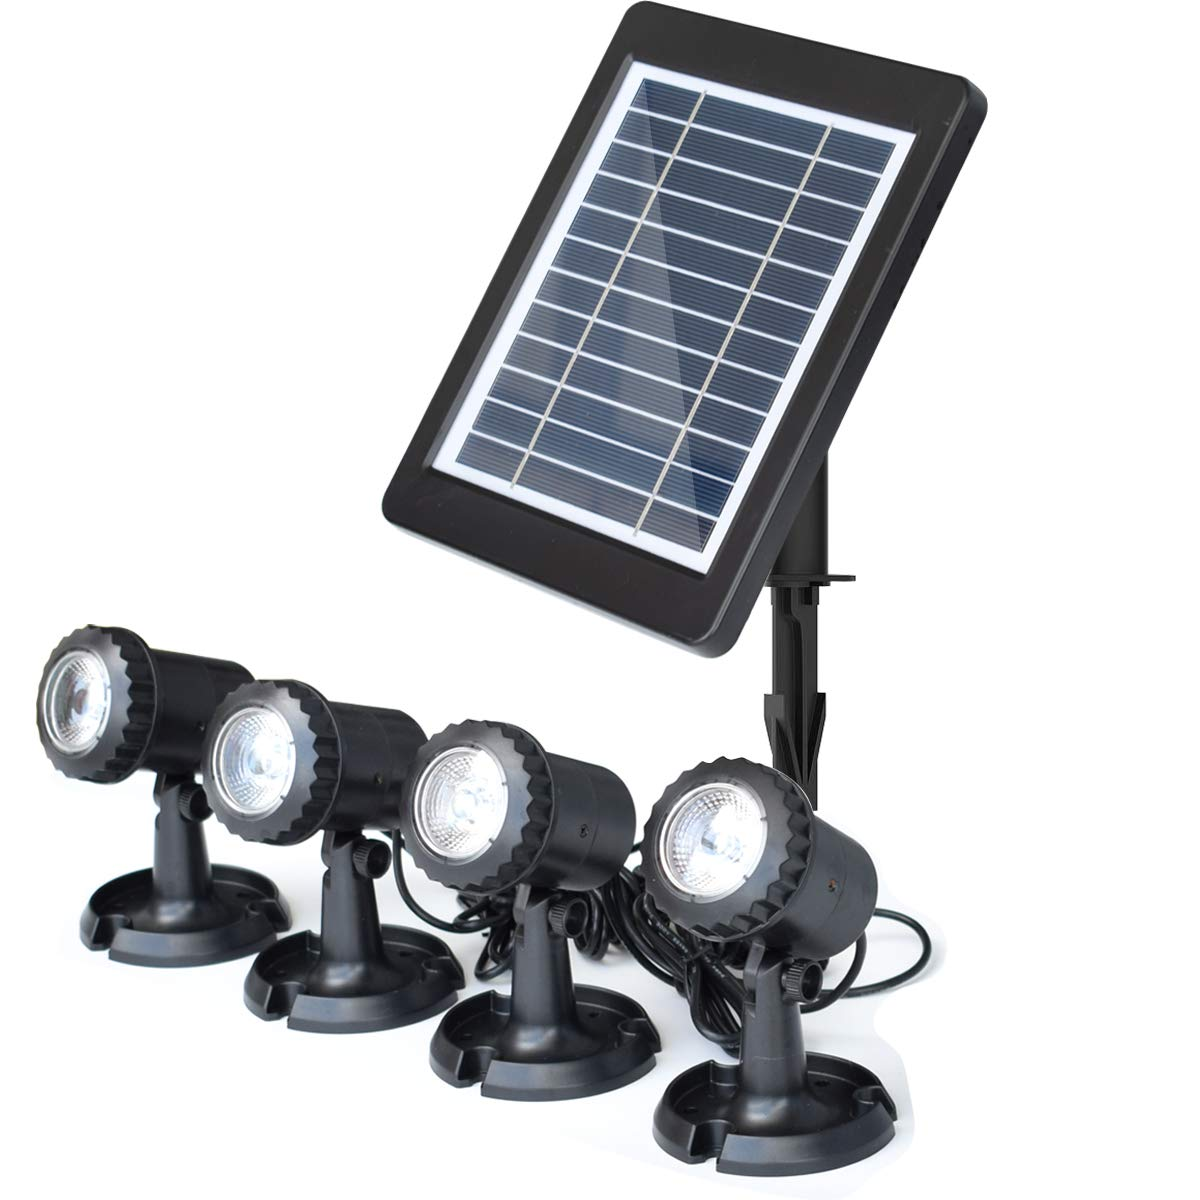 COODIA Solar Powered Underwater Night Light 4 Submersible Warm White Lamps Landscape Spotlight for Garden Pool Pond Outdoor Decoration